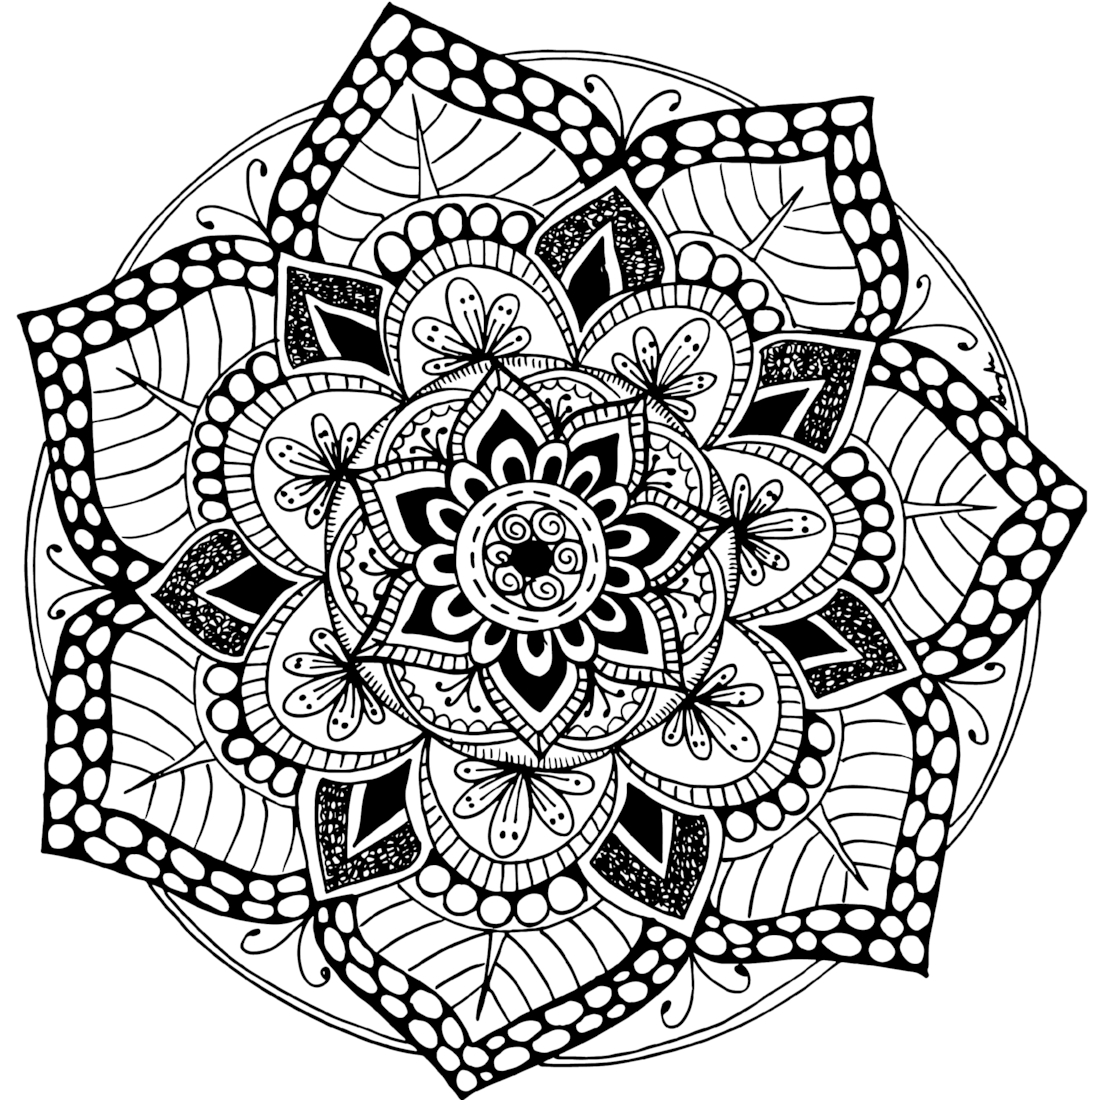 detailed mandala coloring pages coloring to calm volume one mandalas coloring pages mandala detailed